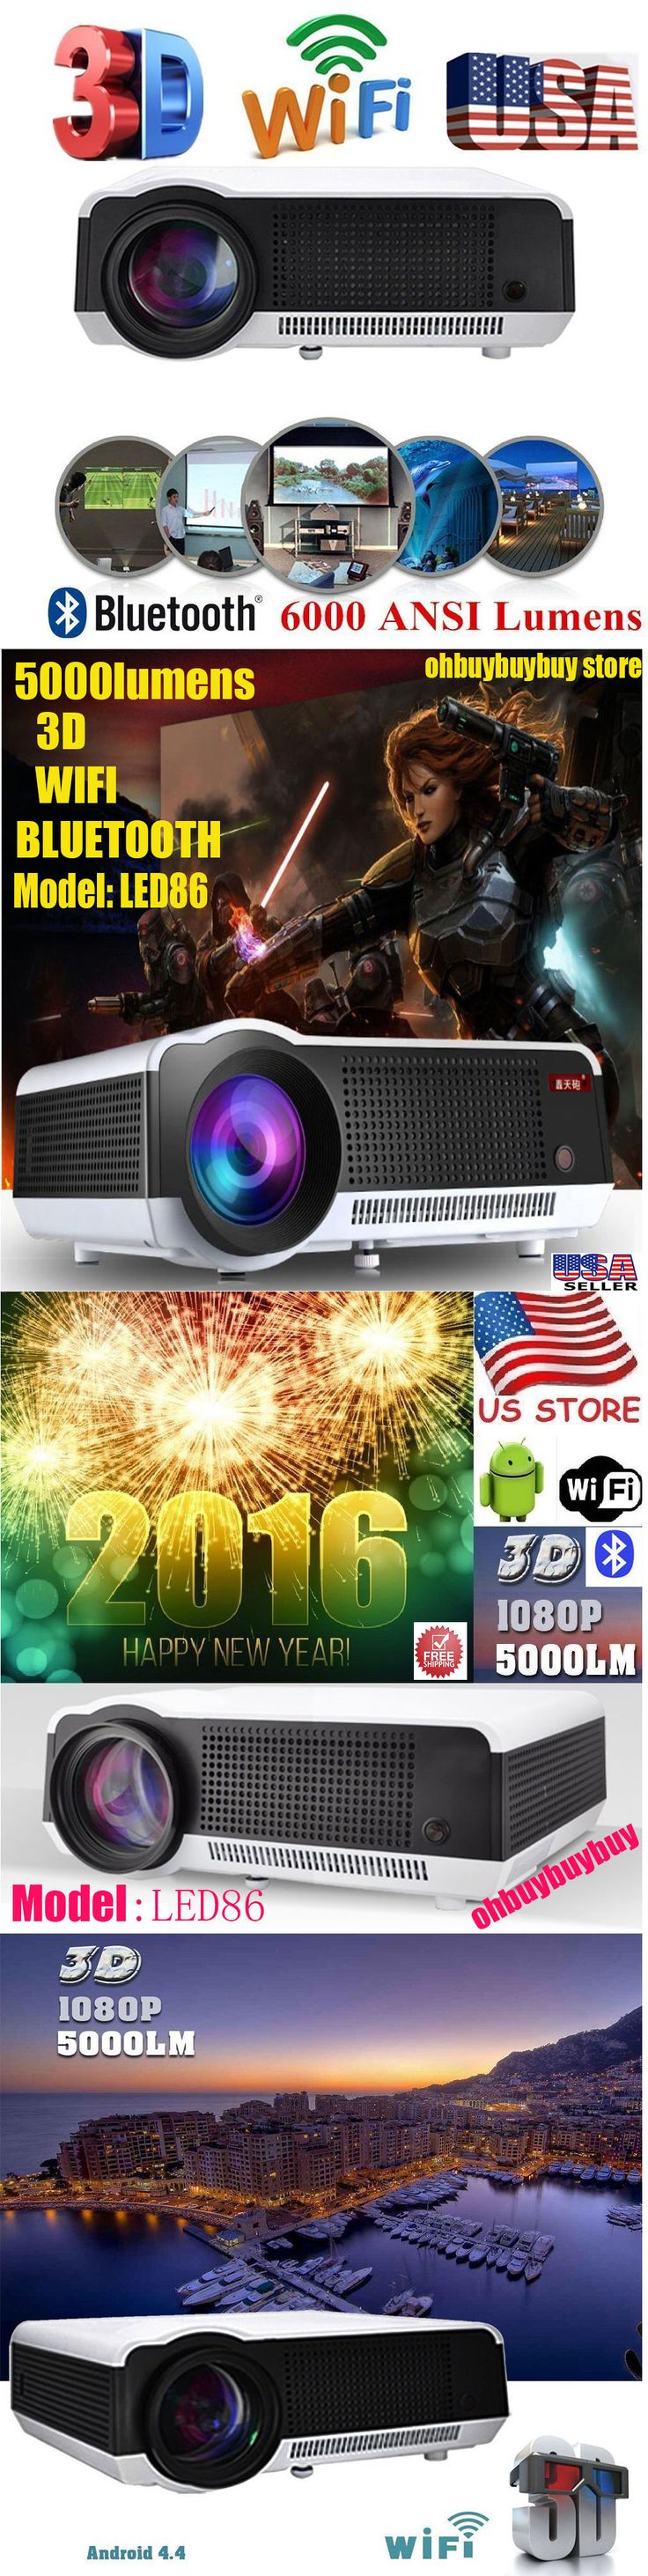 Home Theater Projectors: 6000Lumen Wifi Wireless 3D Hd 1080P Home Theater Hdmi Projector Android 4.4 -> BUY IT NOW ONLY: $199.48 on eBay!